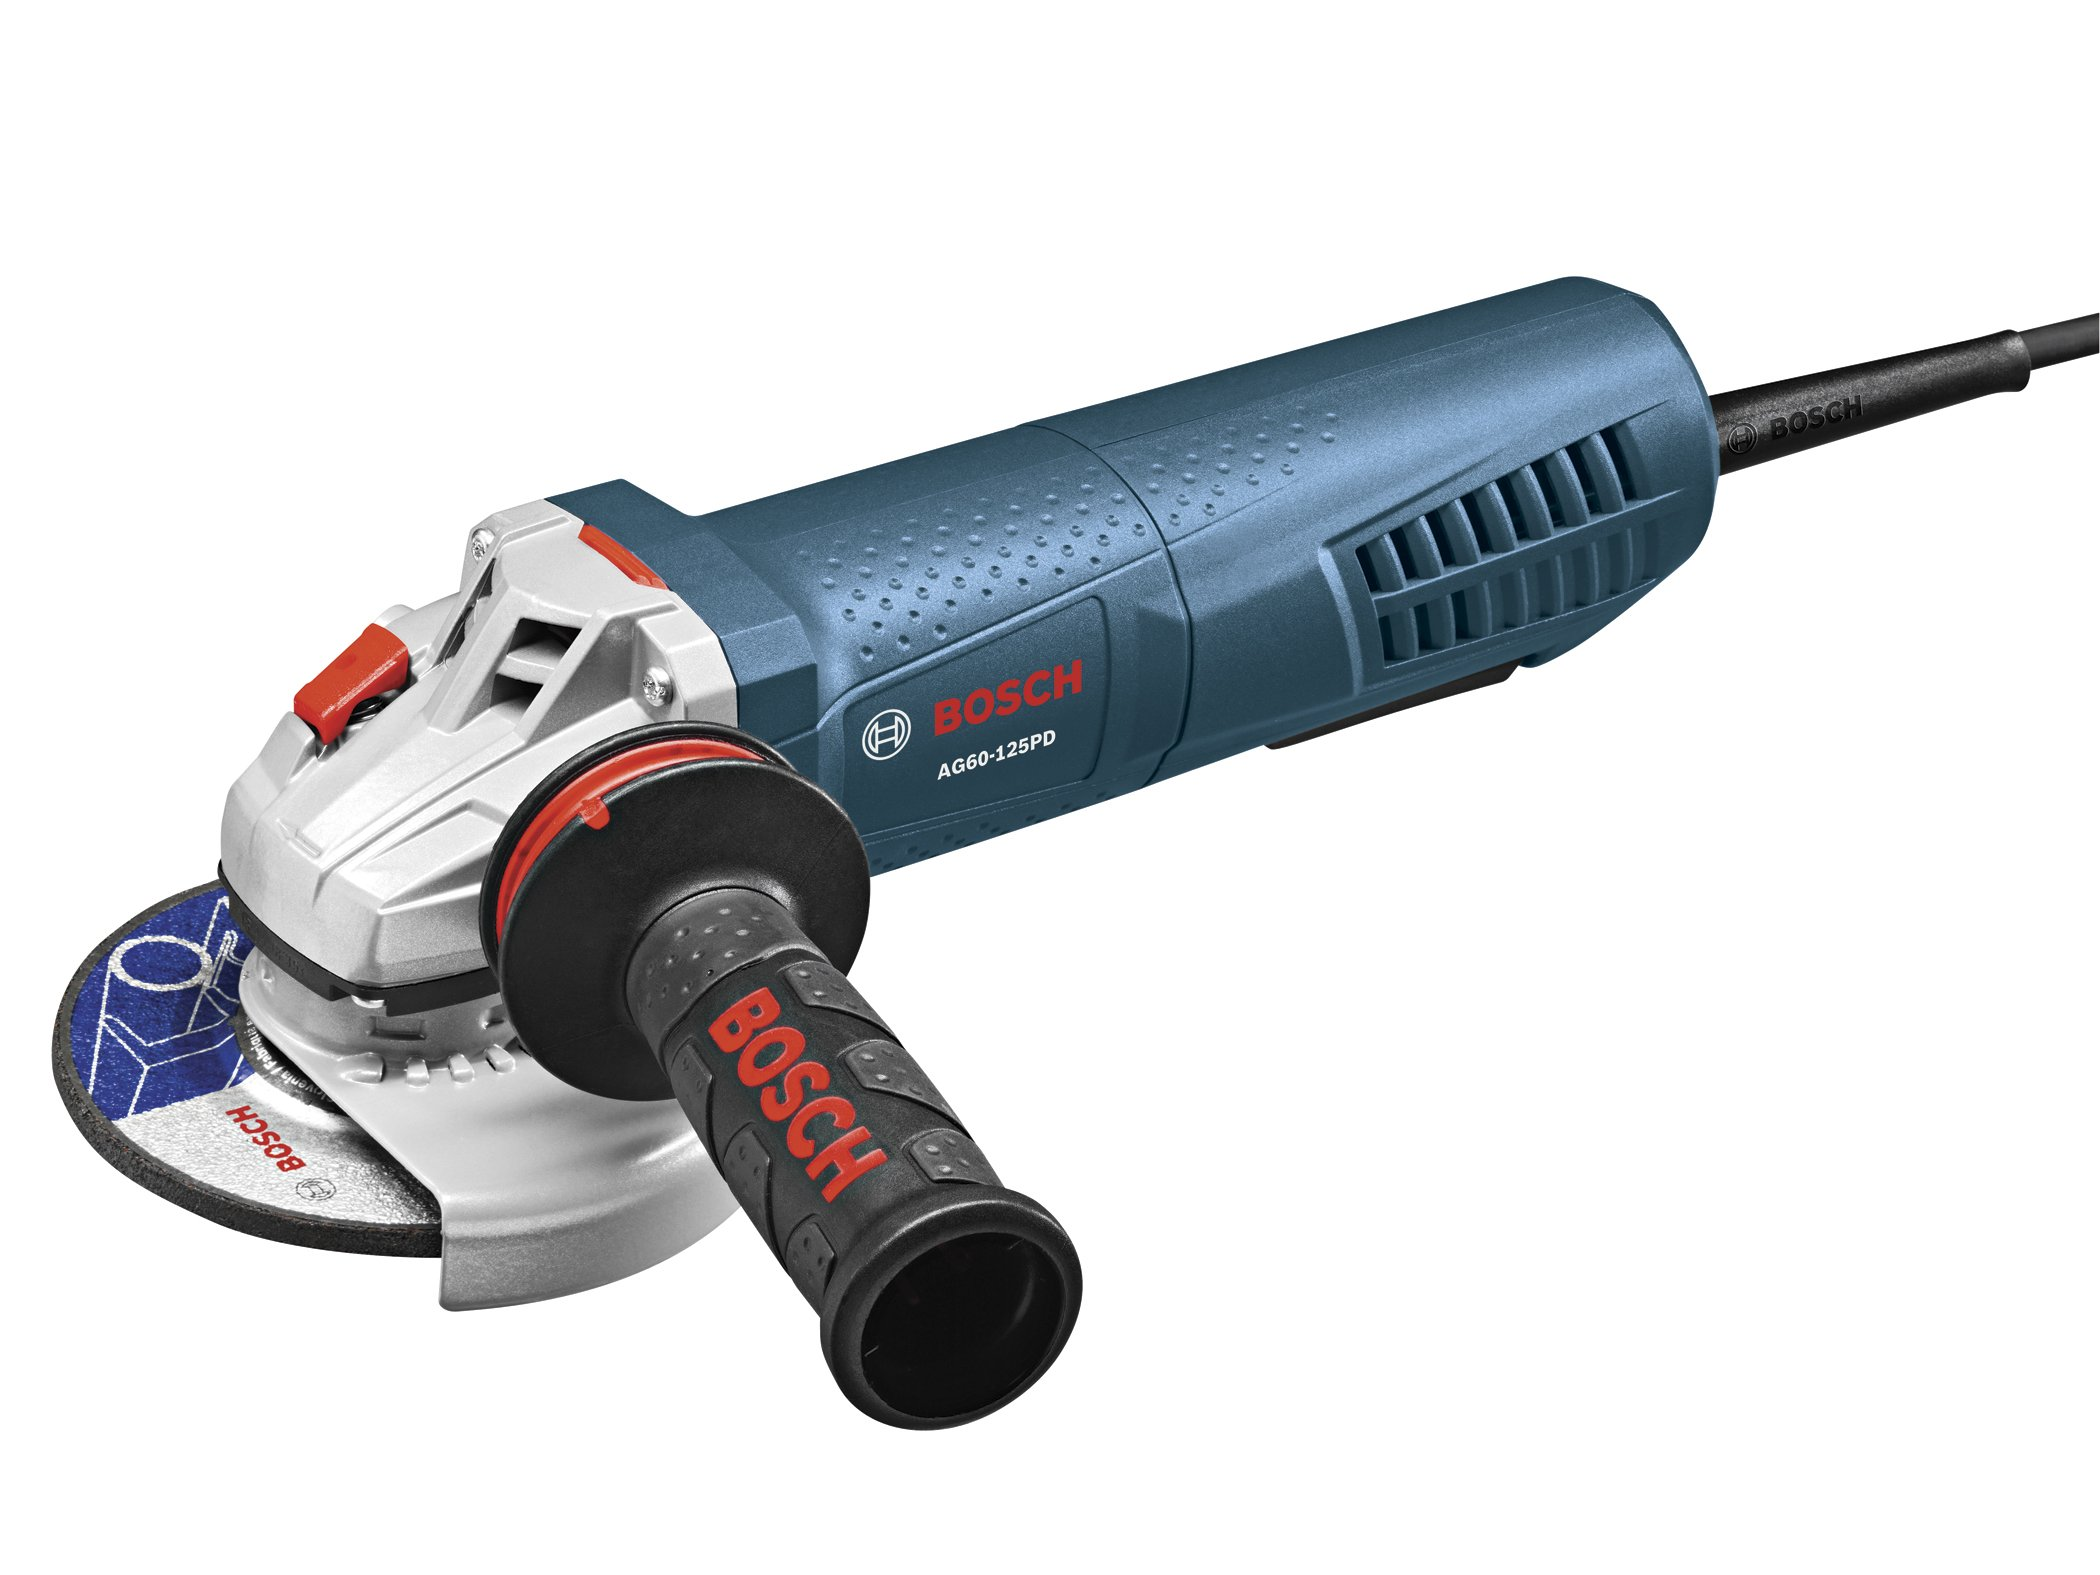 Bosch AG60-125PD 6-Inch High-Performance Cut-Off Grinder with No Lock-on Paddle Switch, 12.5-Amp